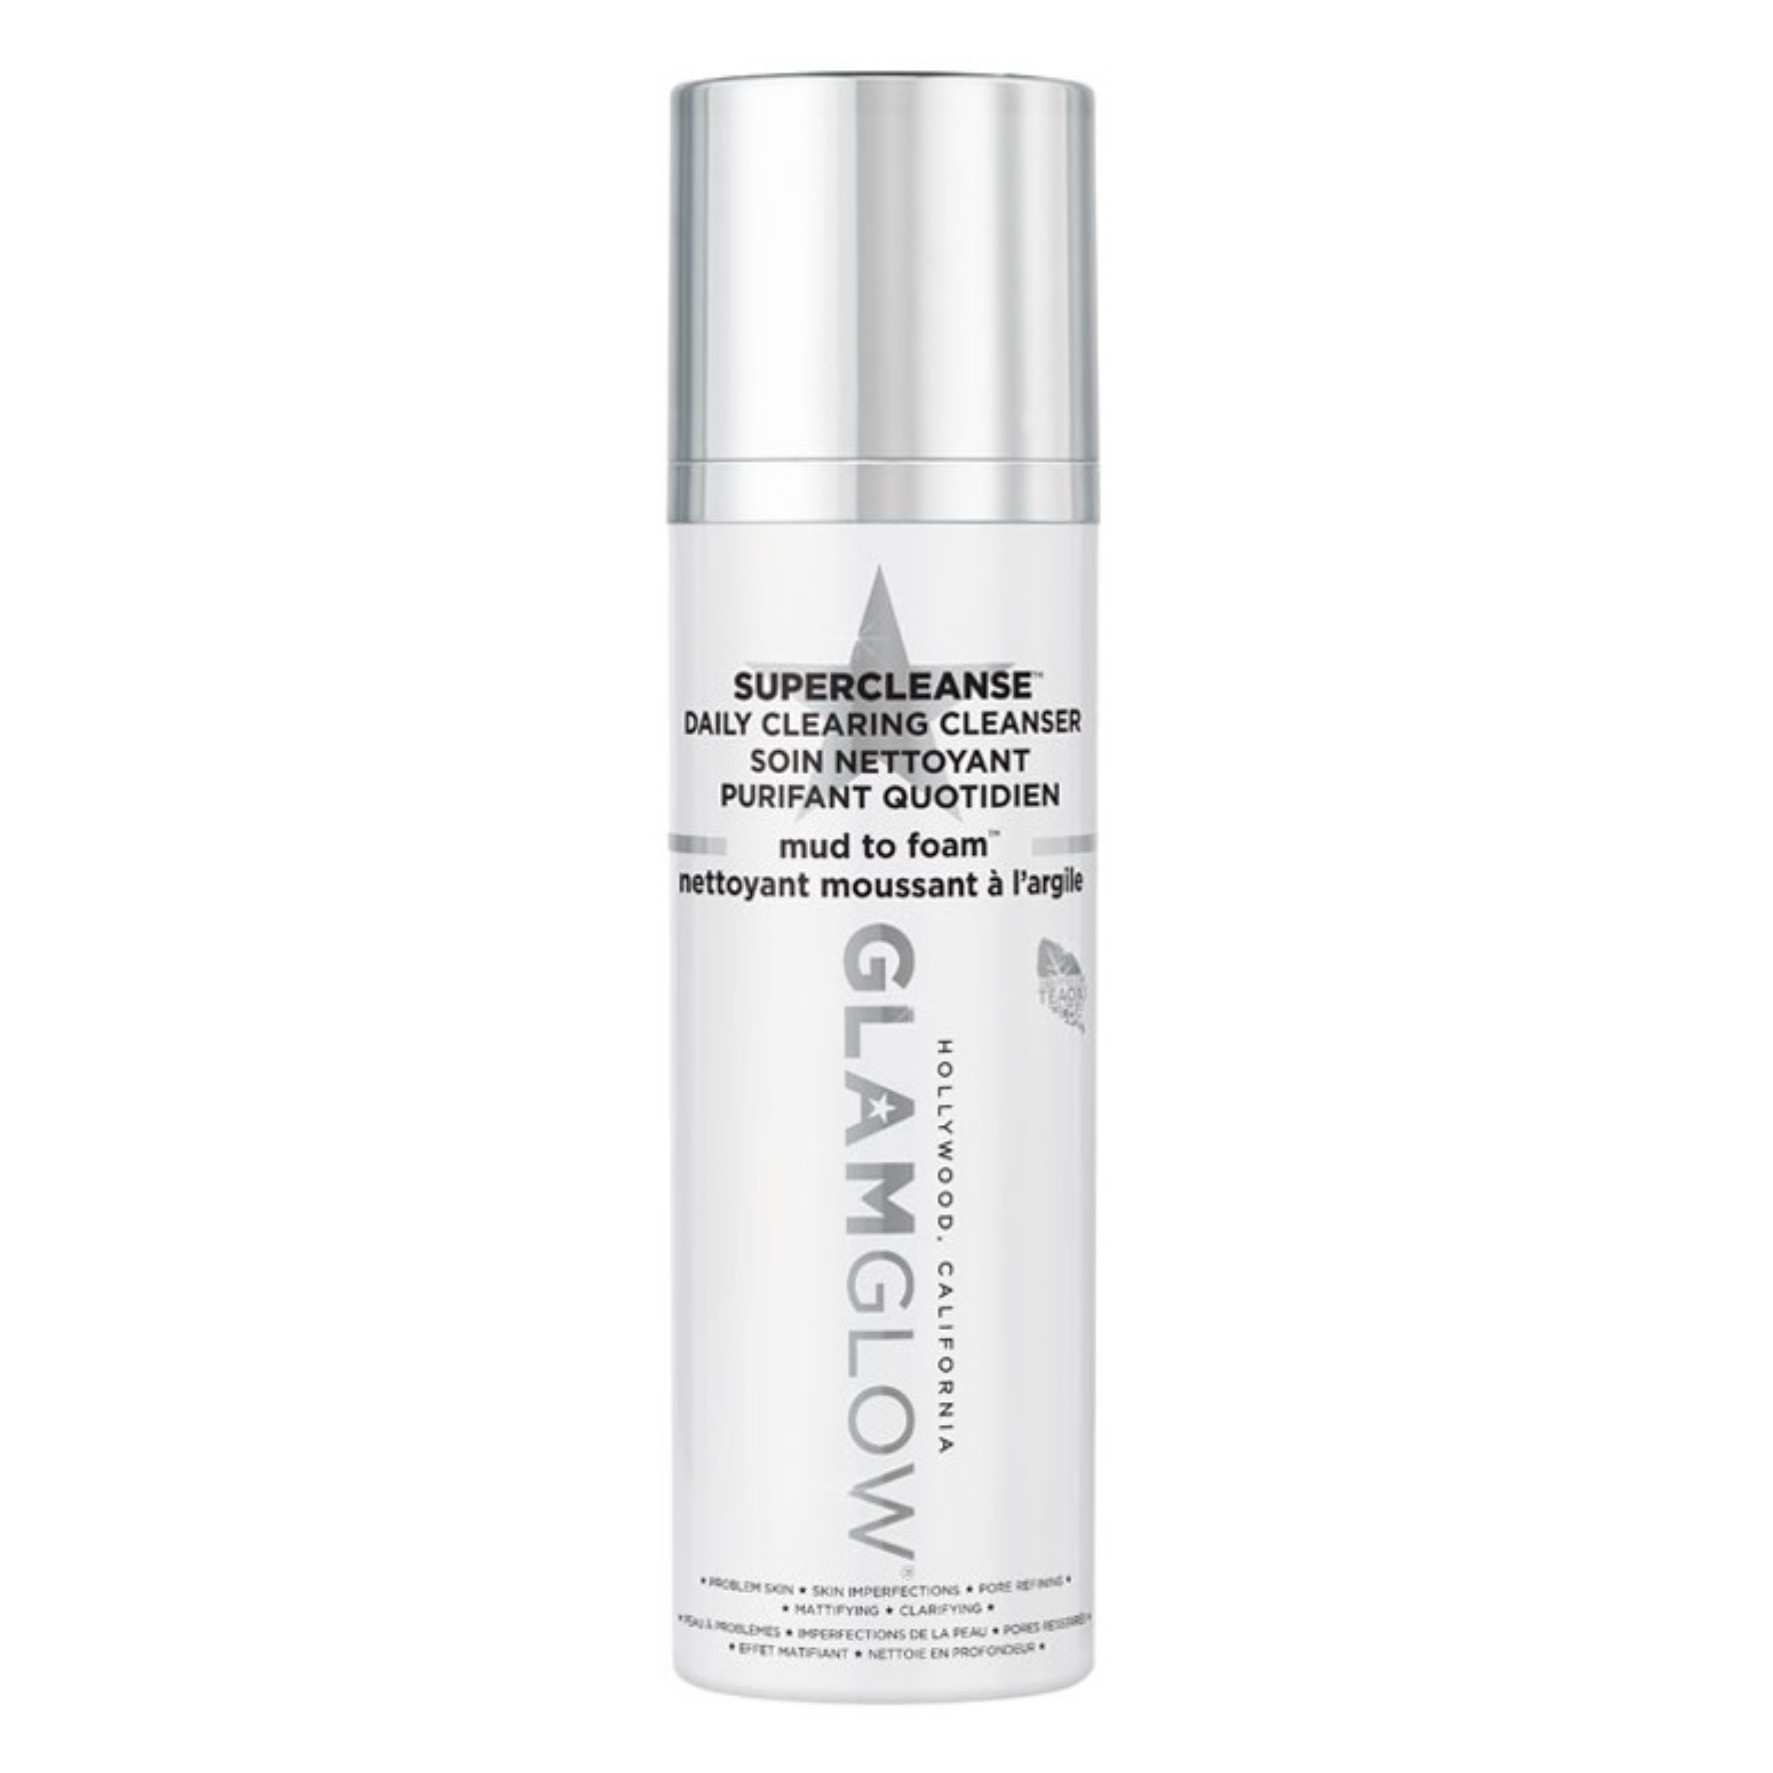 Tips Beli Glamglow Supercleanse Daily Clearing Cleanser 150Ml Yang Bagus